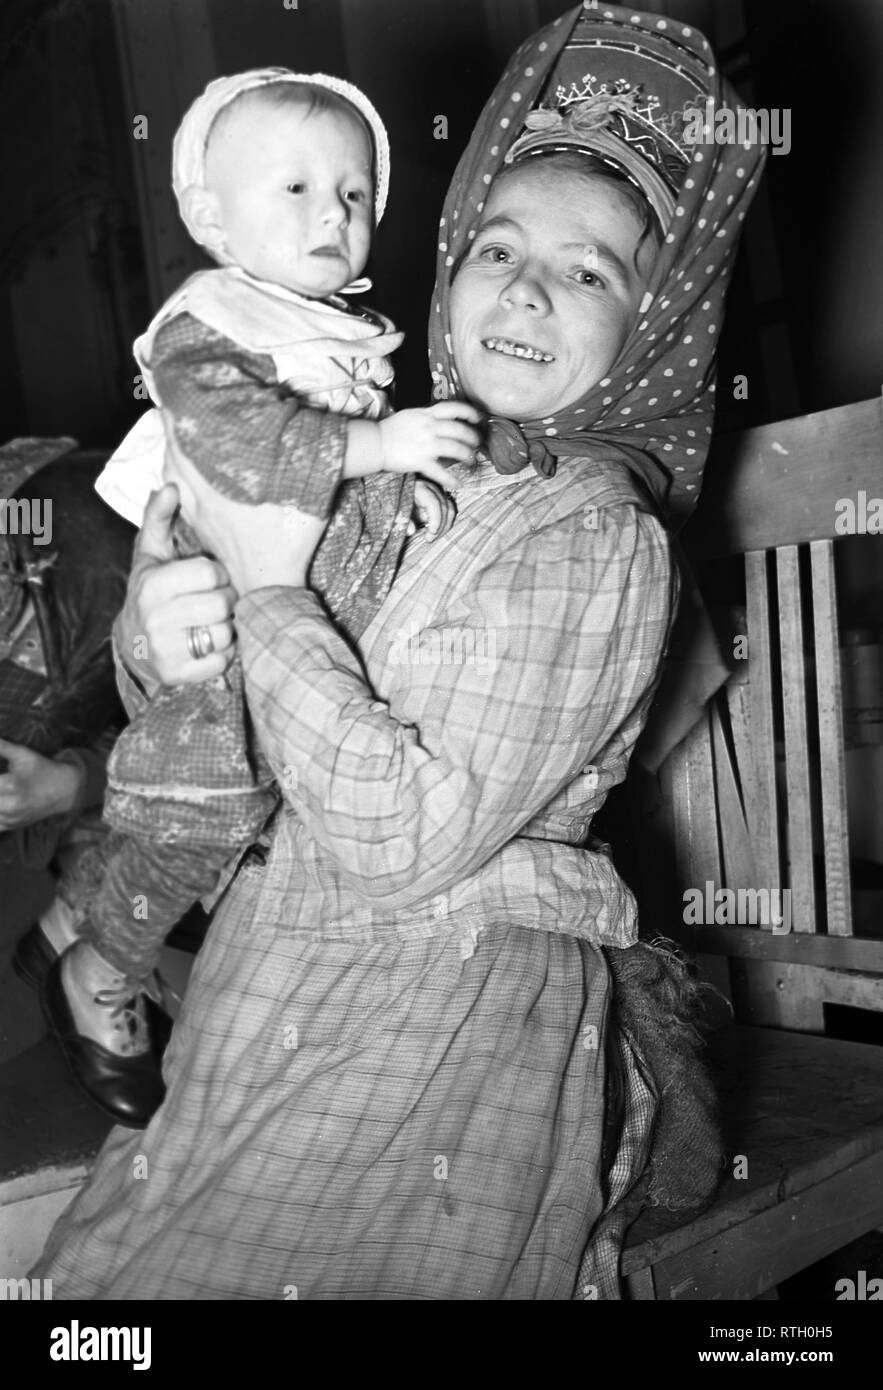 The Winter War. A military conflict between the Soviet union and Finland. It began with a Soviet invasion on november 1939 when Soviet infantery crossed the border on the Karelian Isthmus. About 9500 Swedish volunteer soldiers participated in the war. Here at Karelian Isthmus Finland  Finnish civilians evacuated from the frontline. A young mother and her child. December 1939. Photo Kristoffersson ref 98-11. - Stock Image